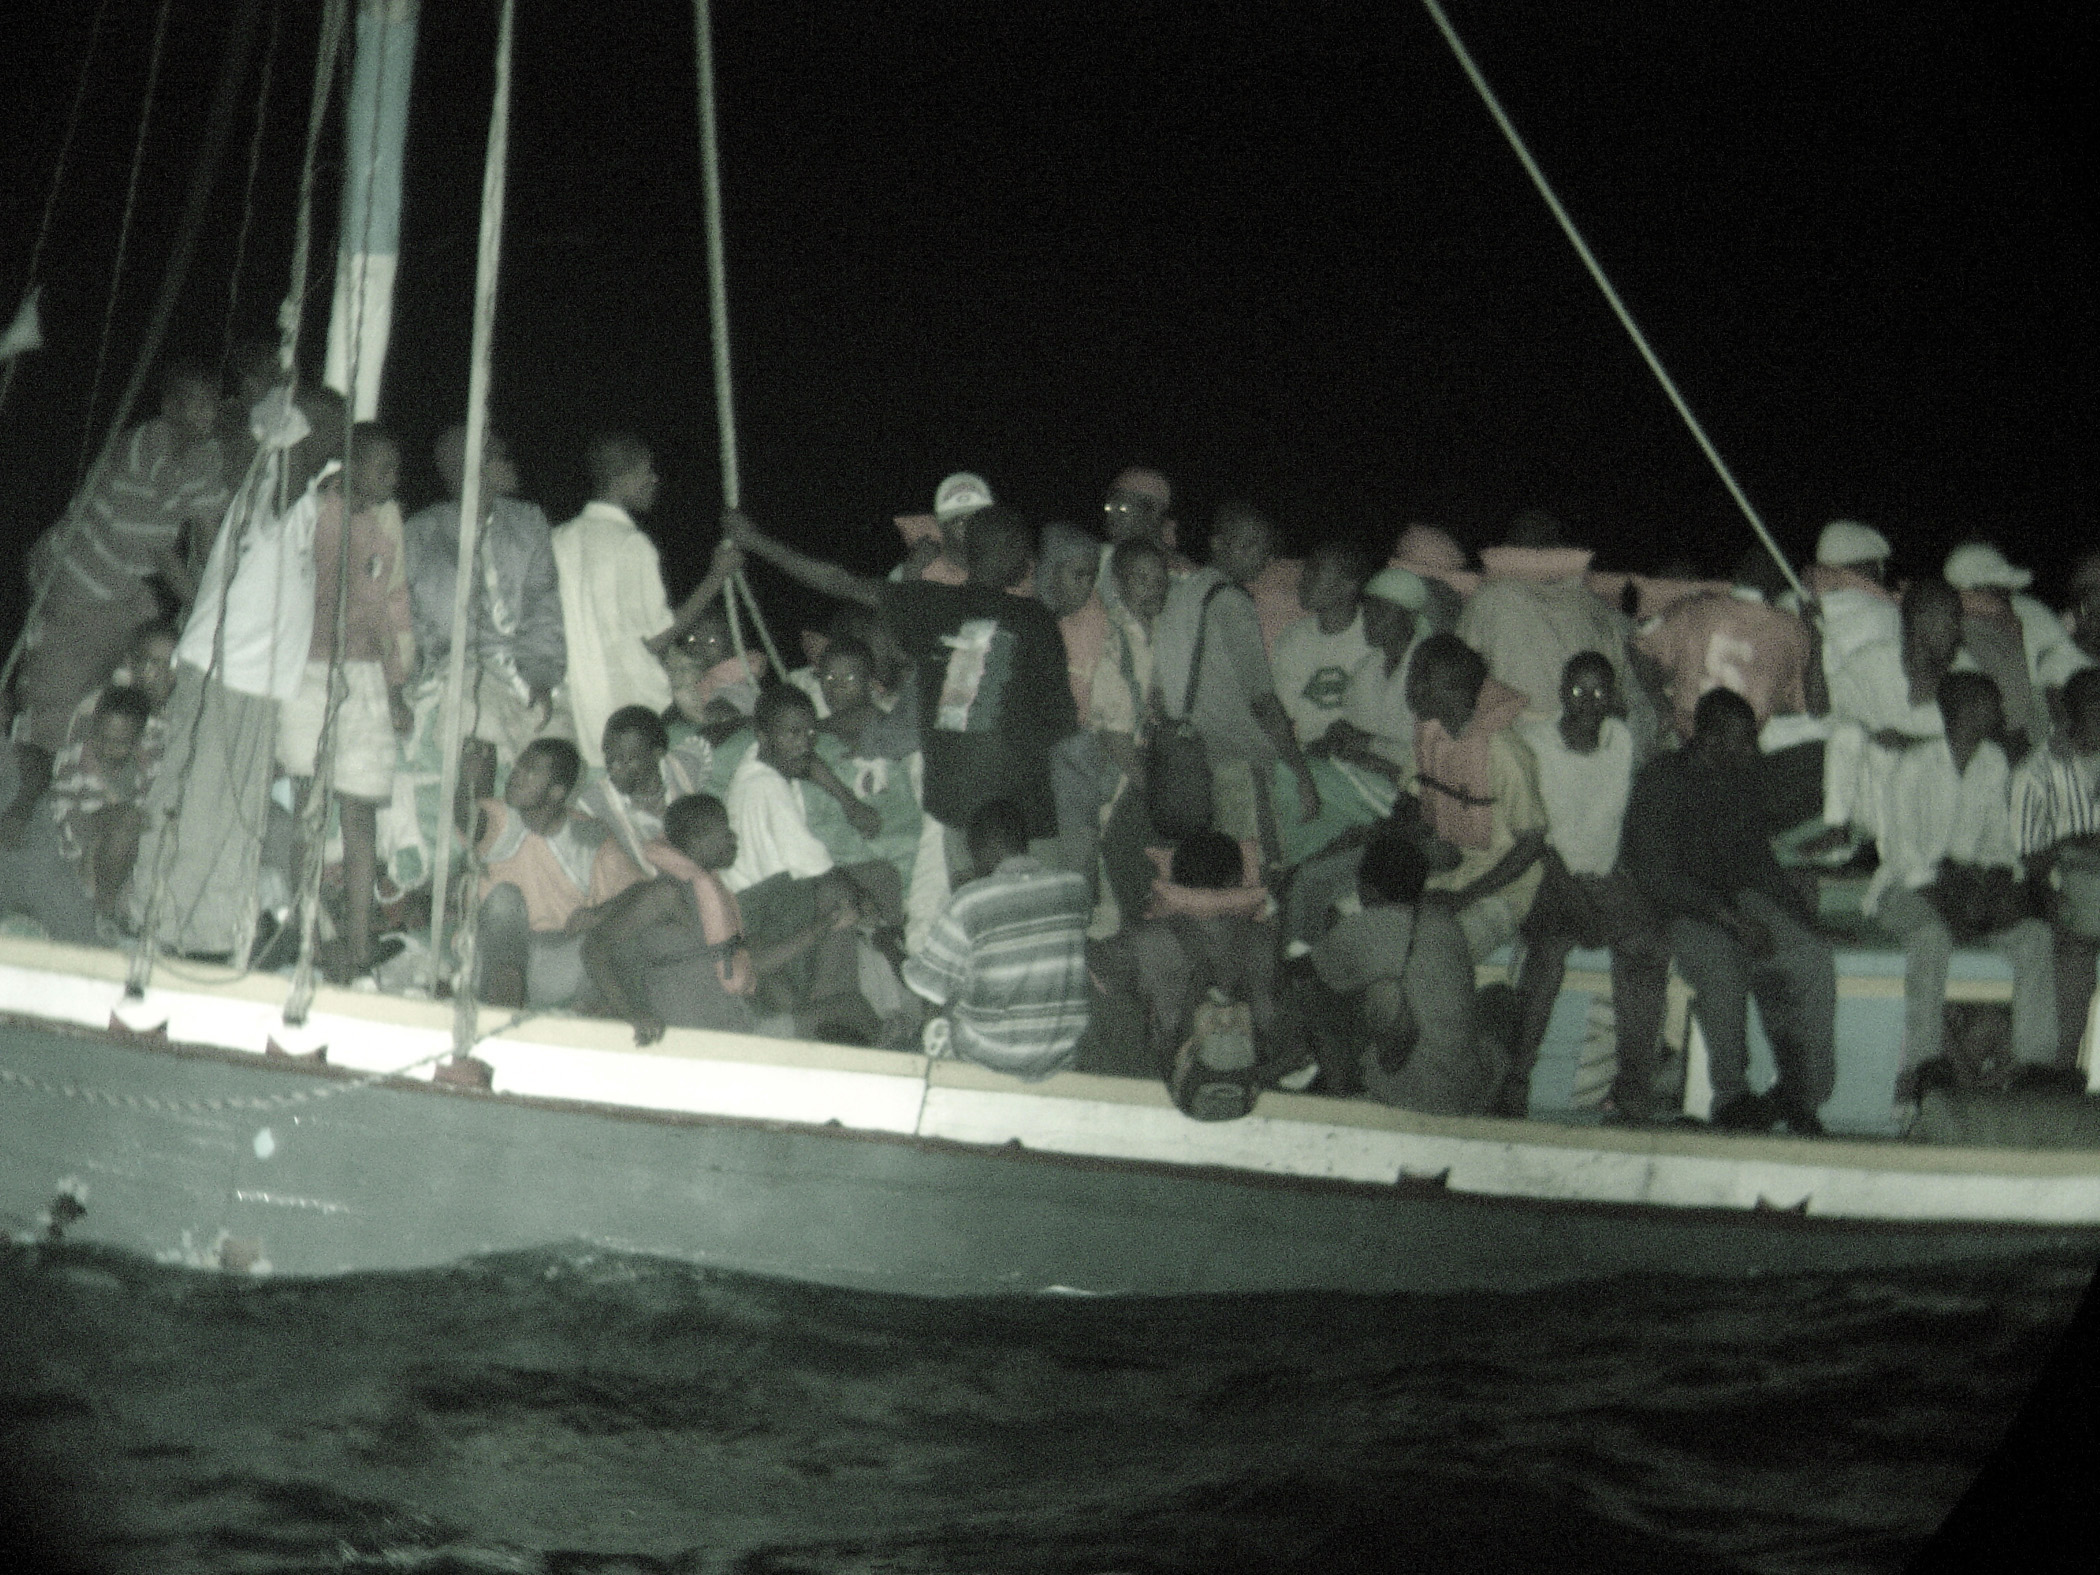 Boat people from Haiti